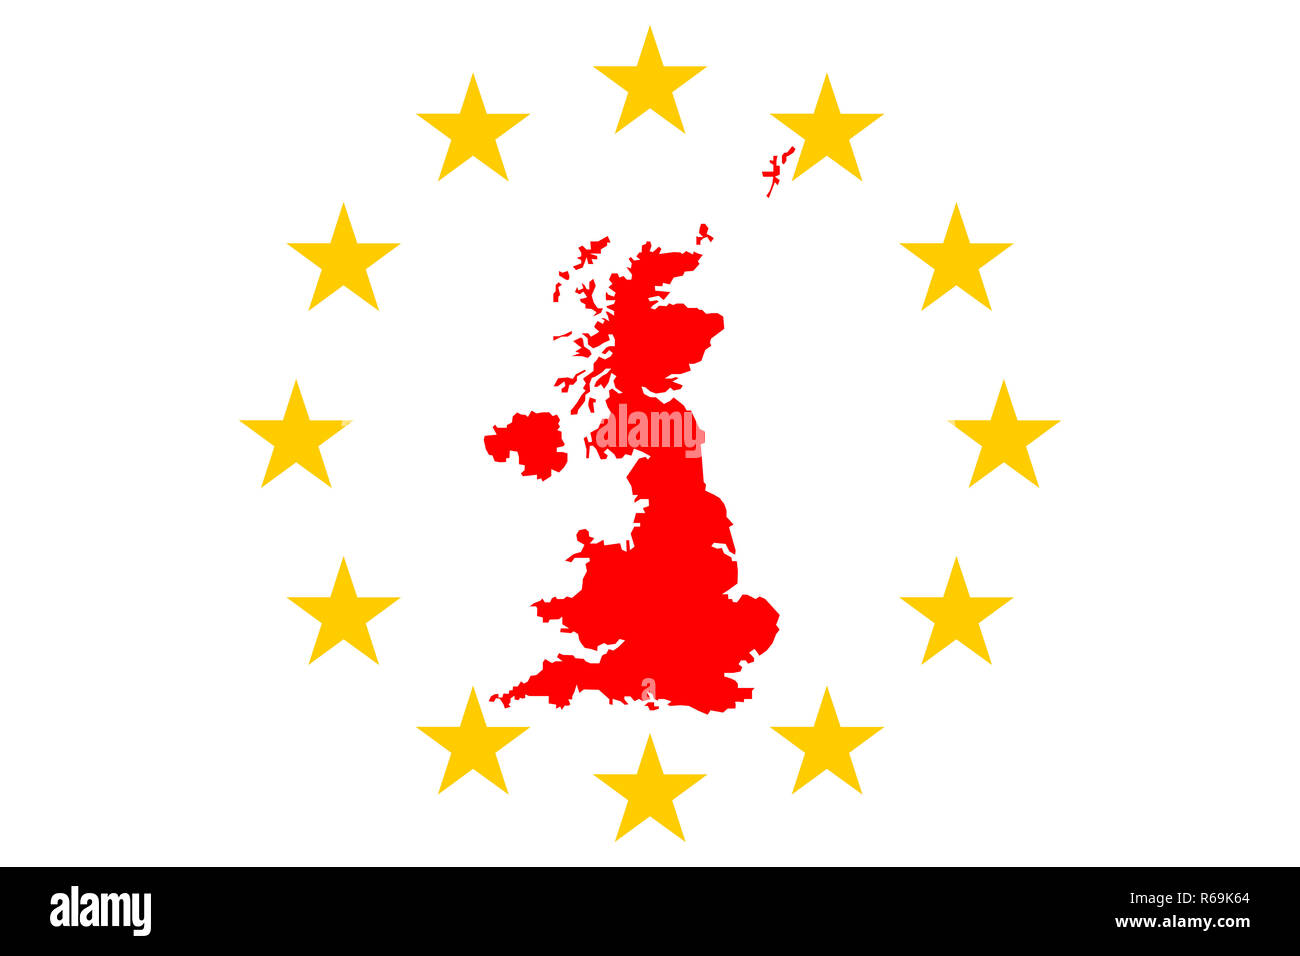 Brexit Great Britain Map With European Stars Circle - Stock Image